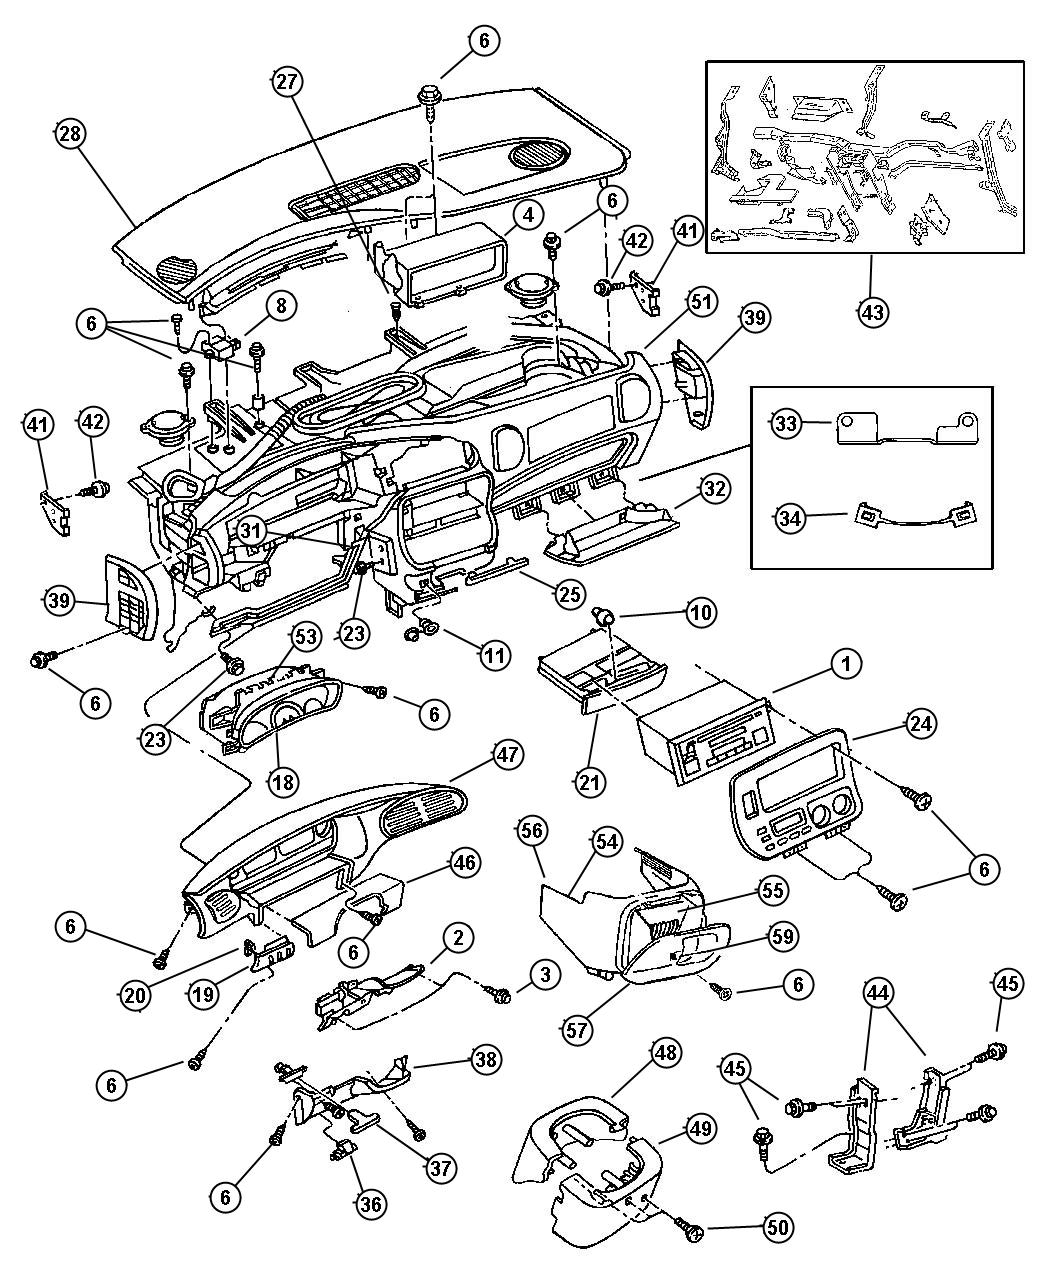 Pontiac Grand Prix Engine Diagram